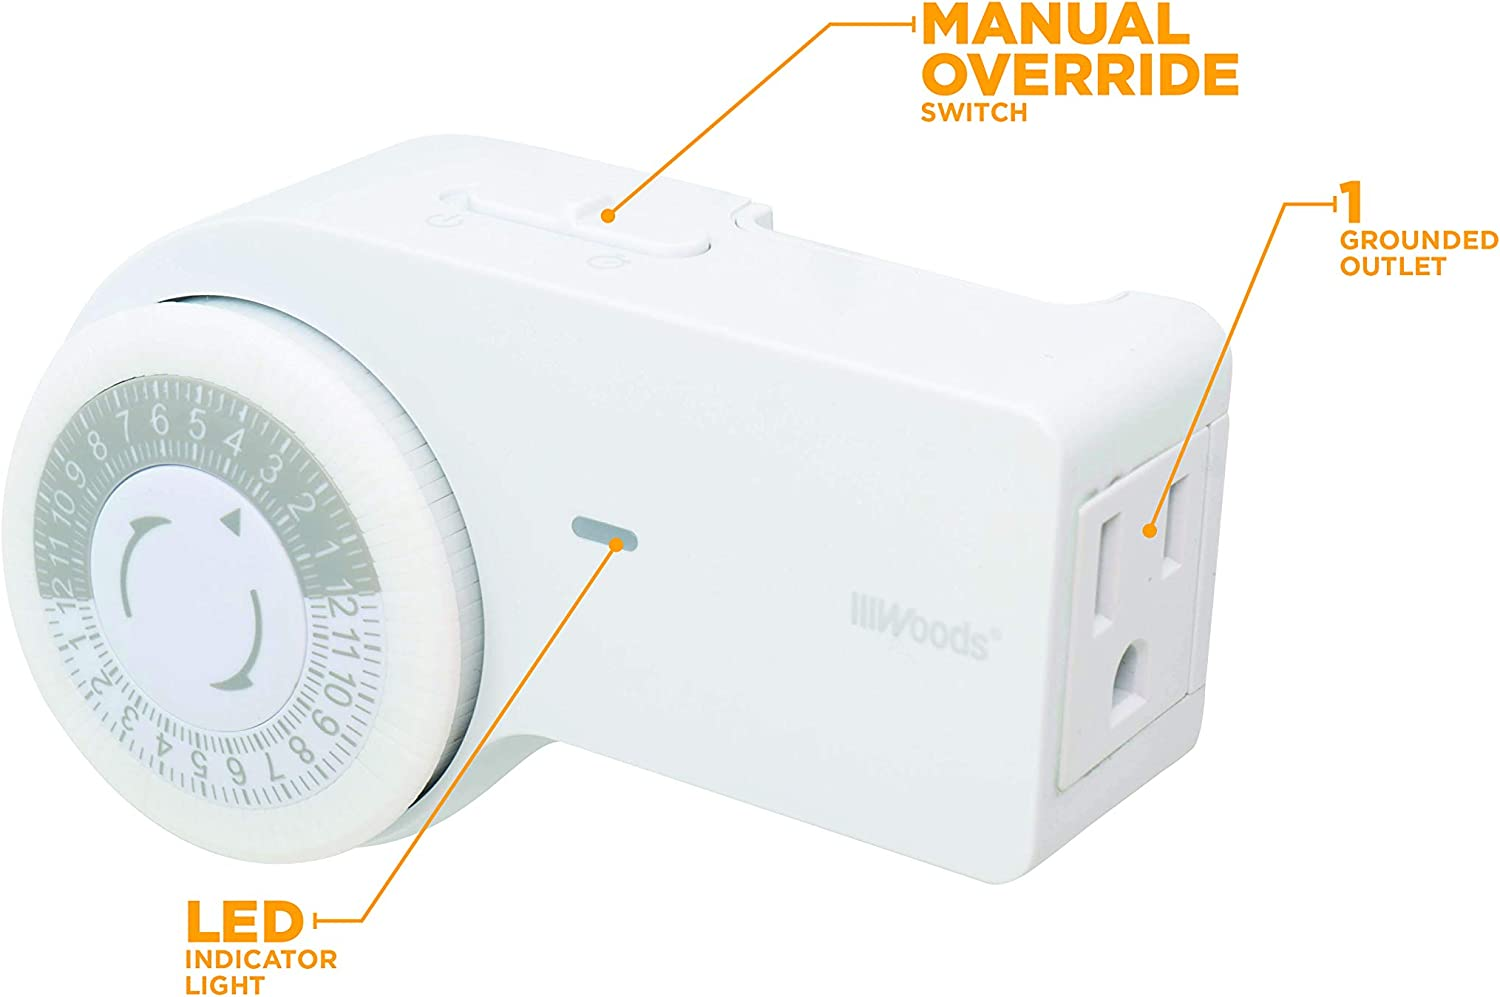 1 Grounded Outlet Standard Body, Woods 50103WD Indoor 24-Hour Heavy Duty Mechanical Timer